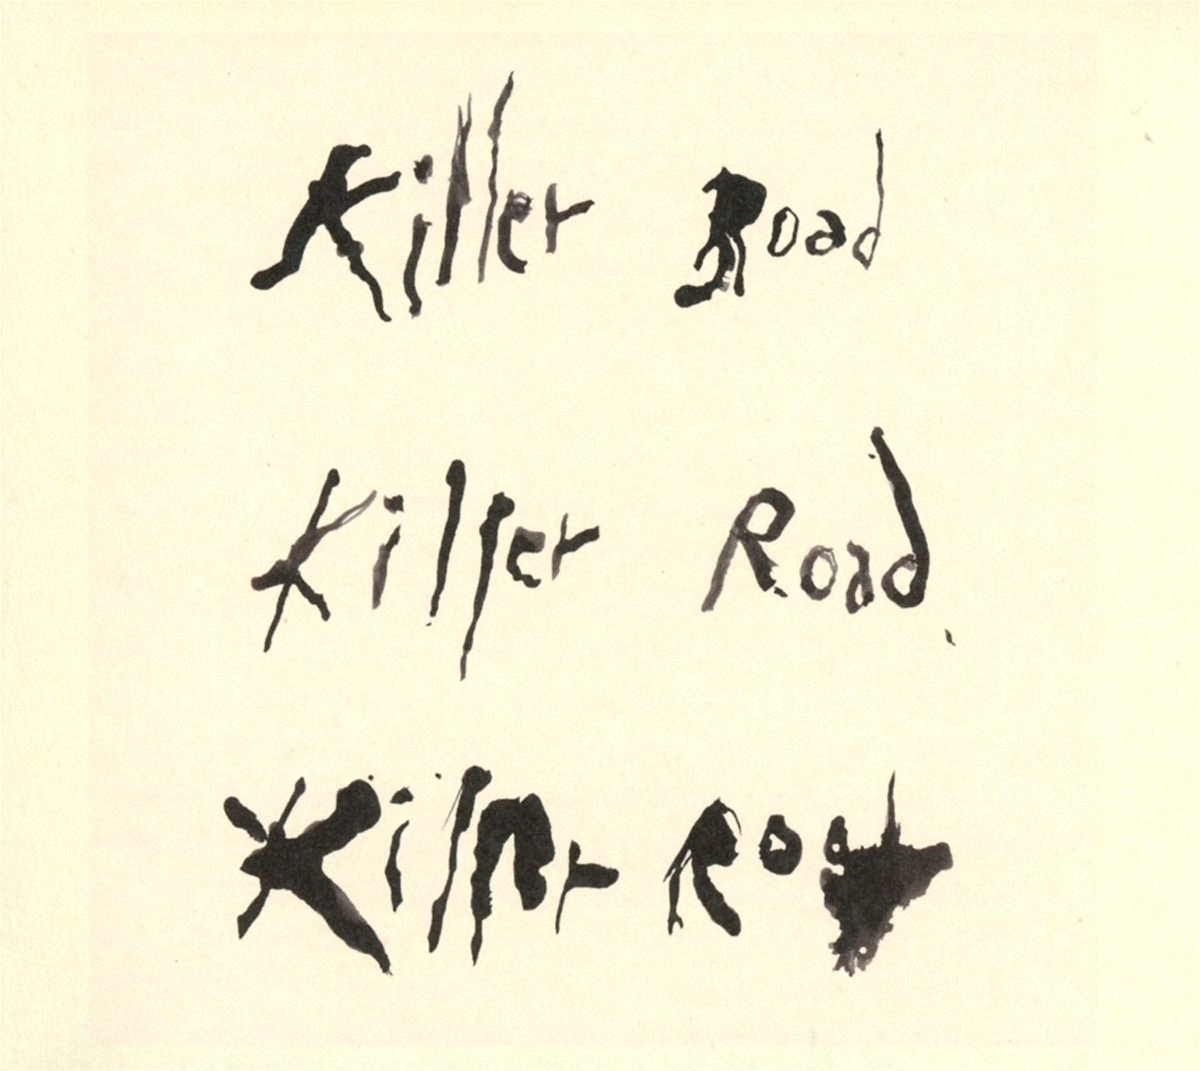 crossover 07 16 killerRoad